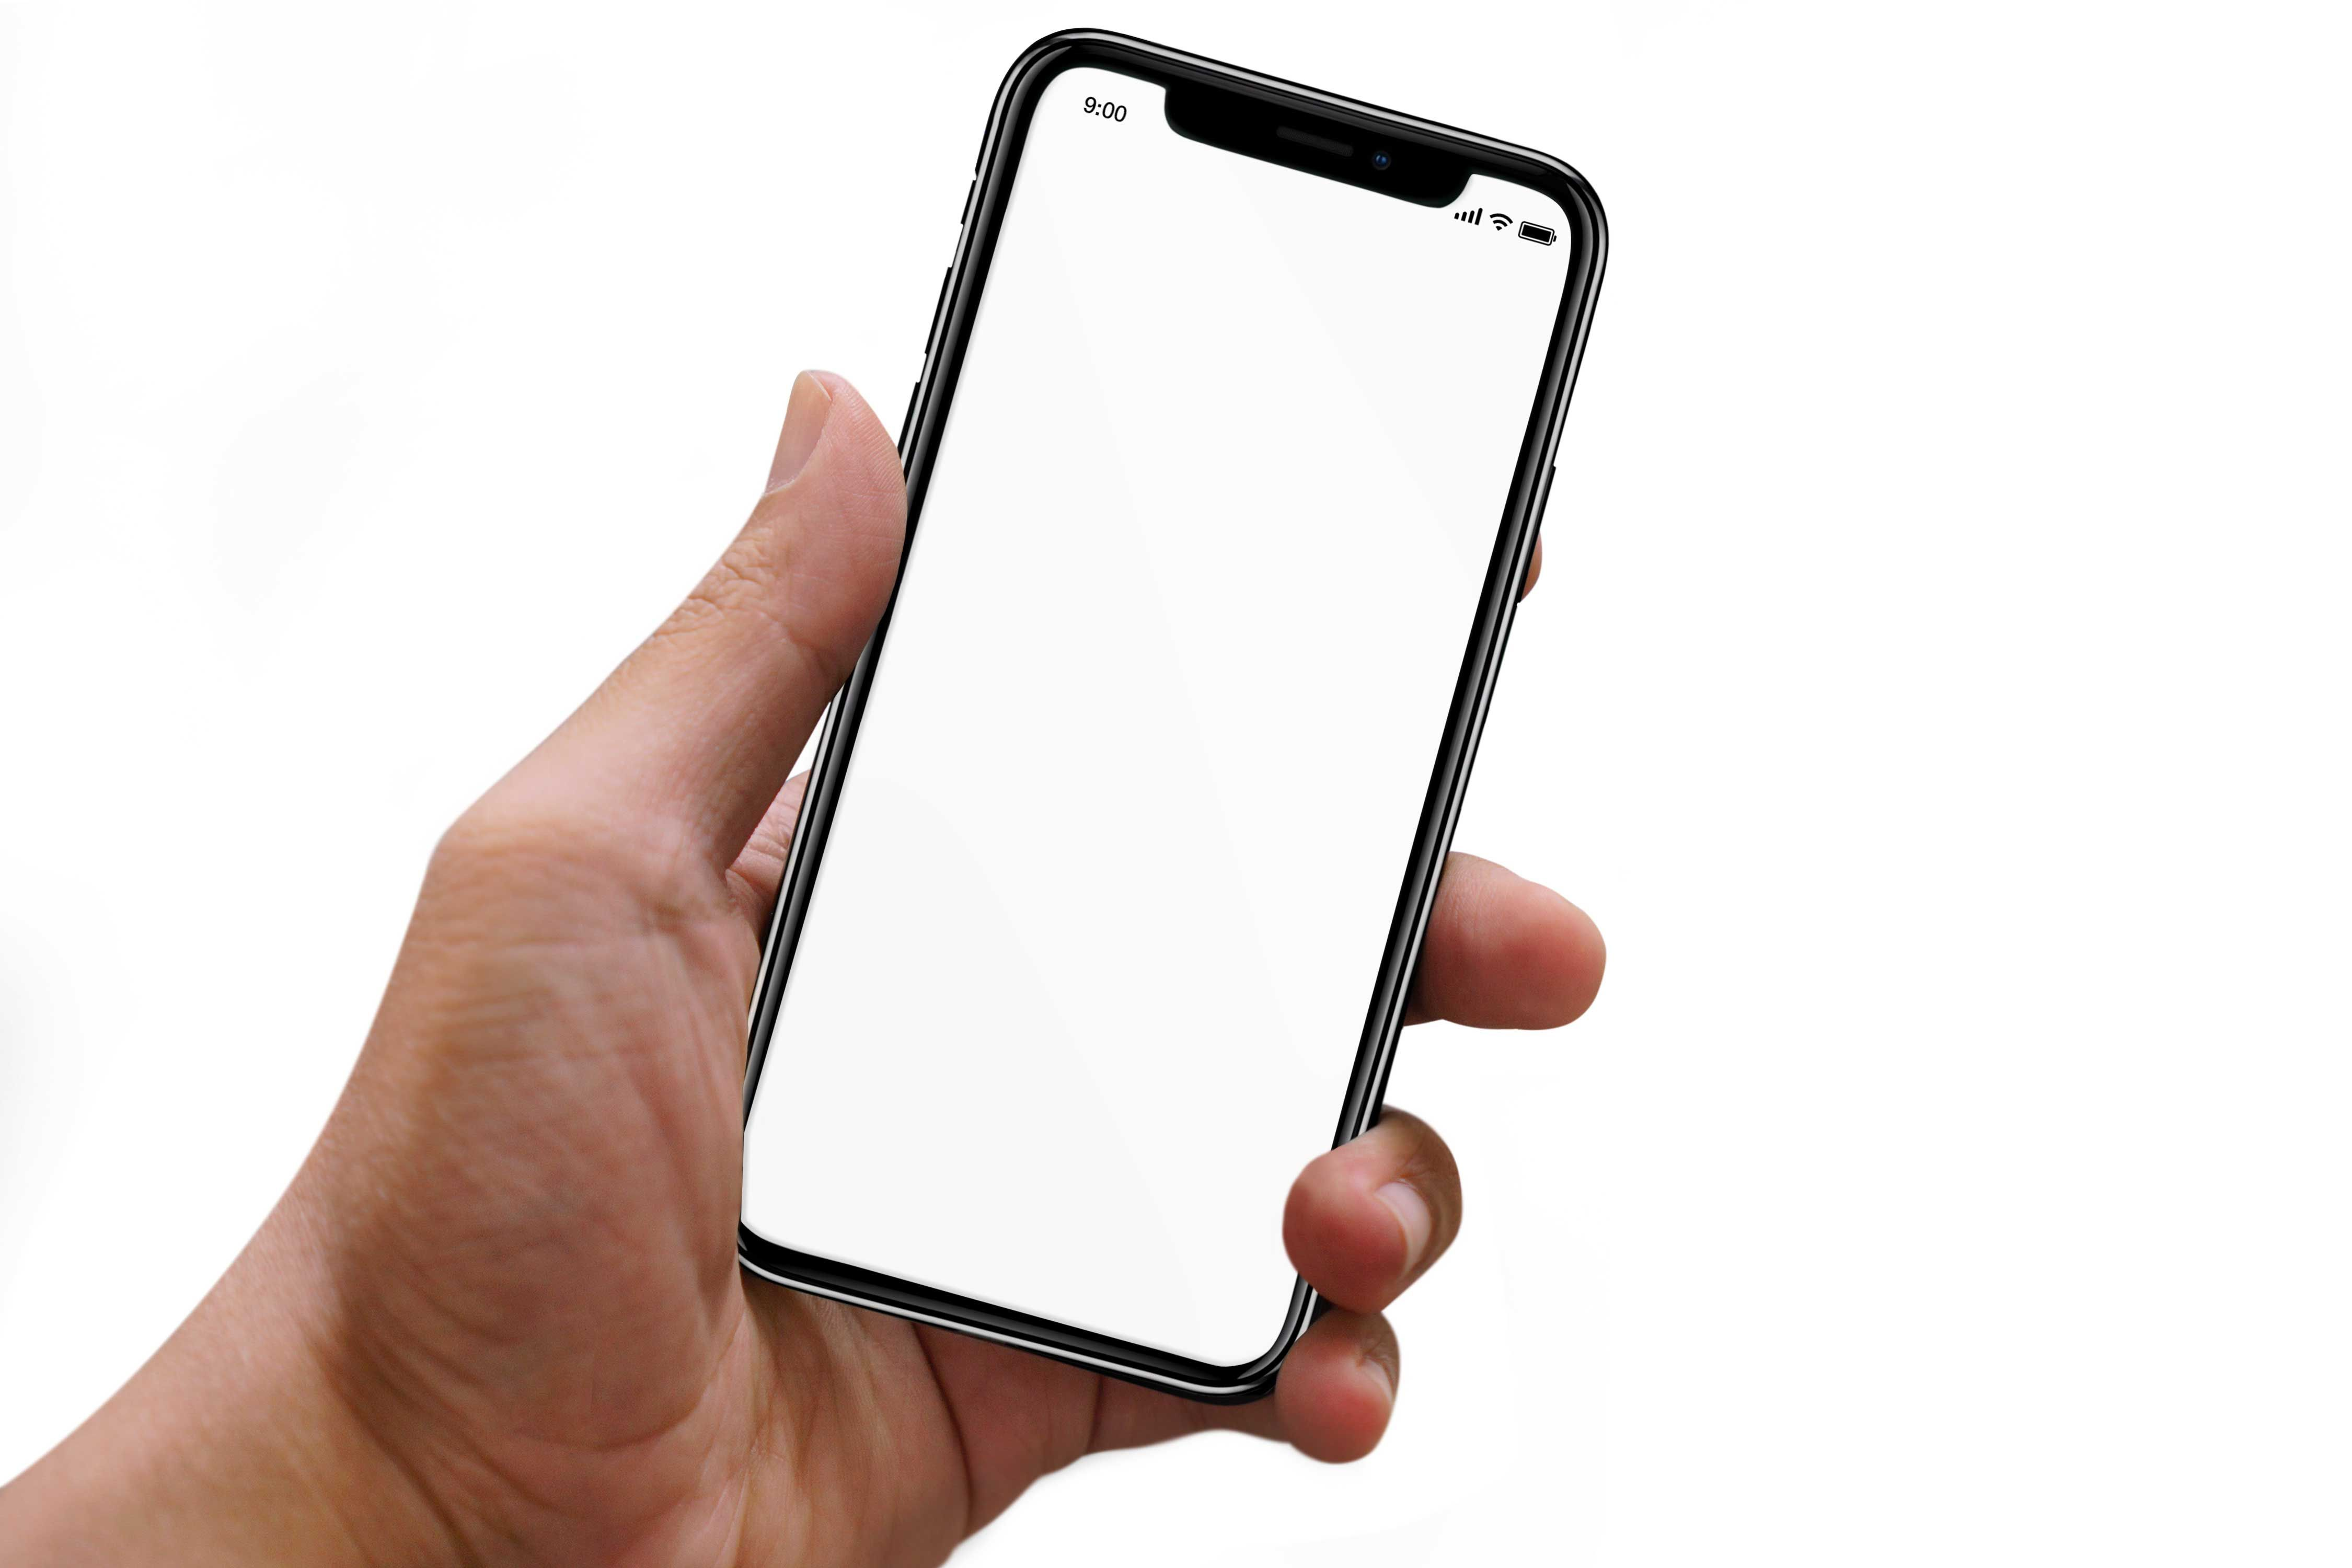 Free Iphone X In Hand Mockup Pixelify Best Free Fonts Mockups Templates And Vectors Free Iphone Phone Photography Android Iphone